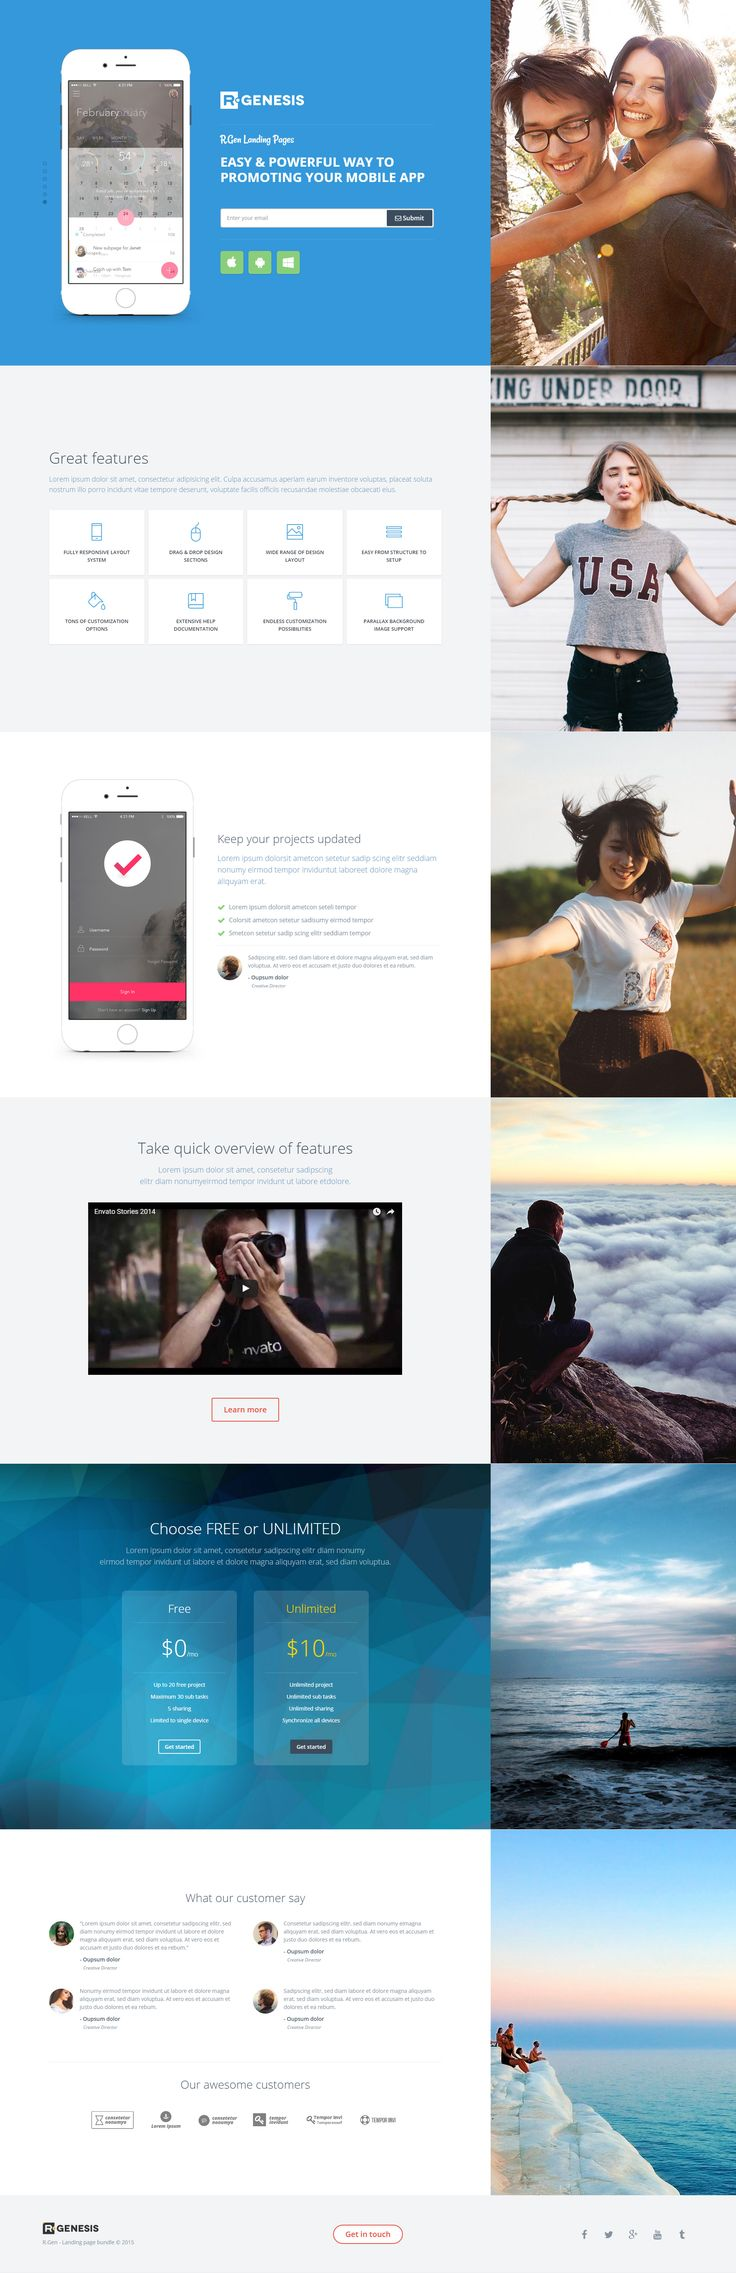 App landing page with parallax effect  background images